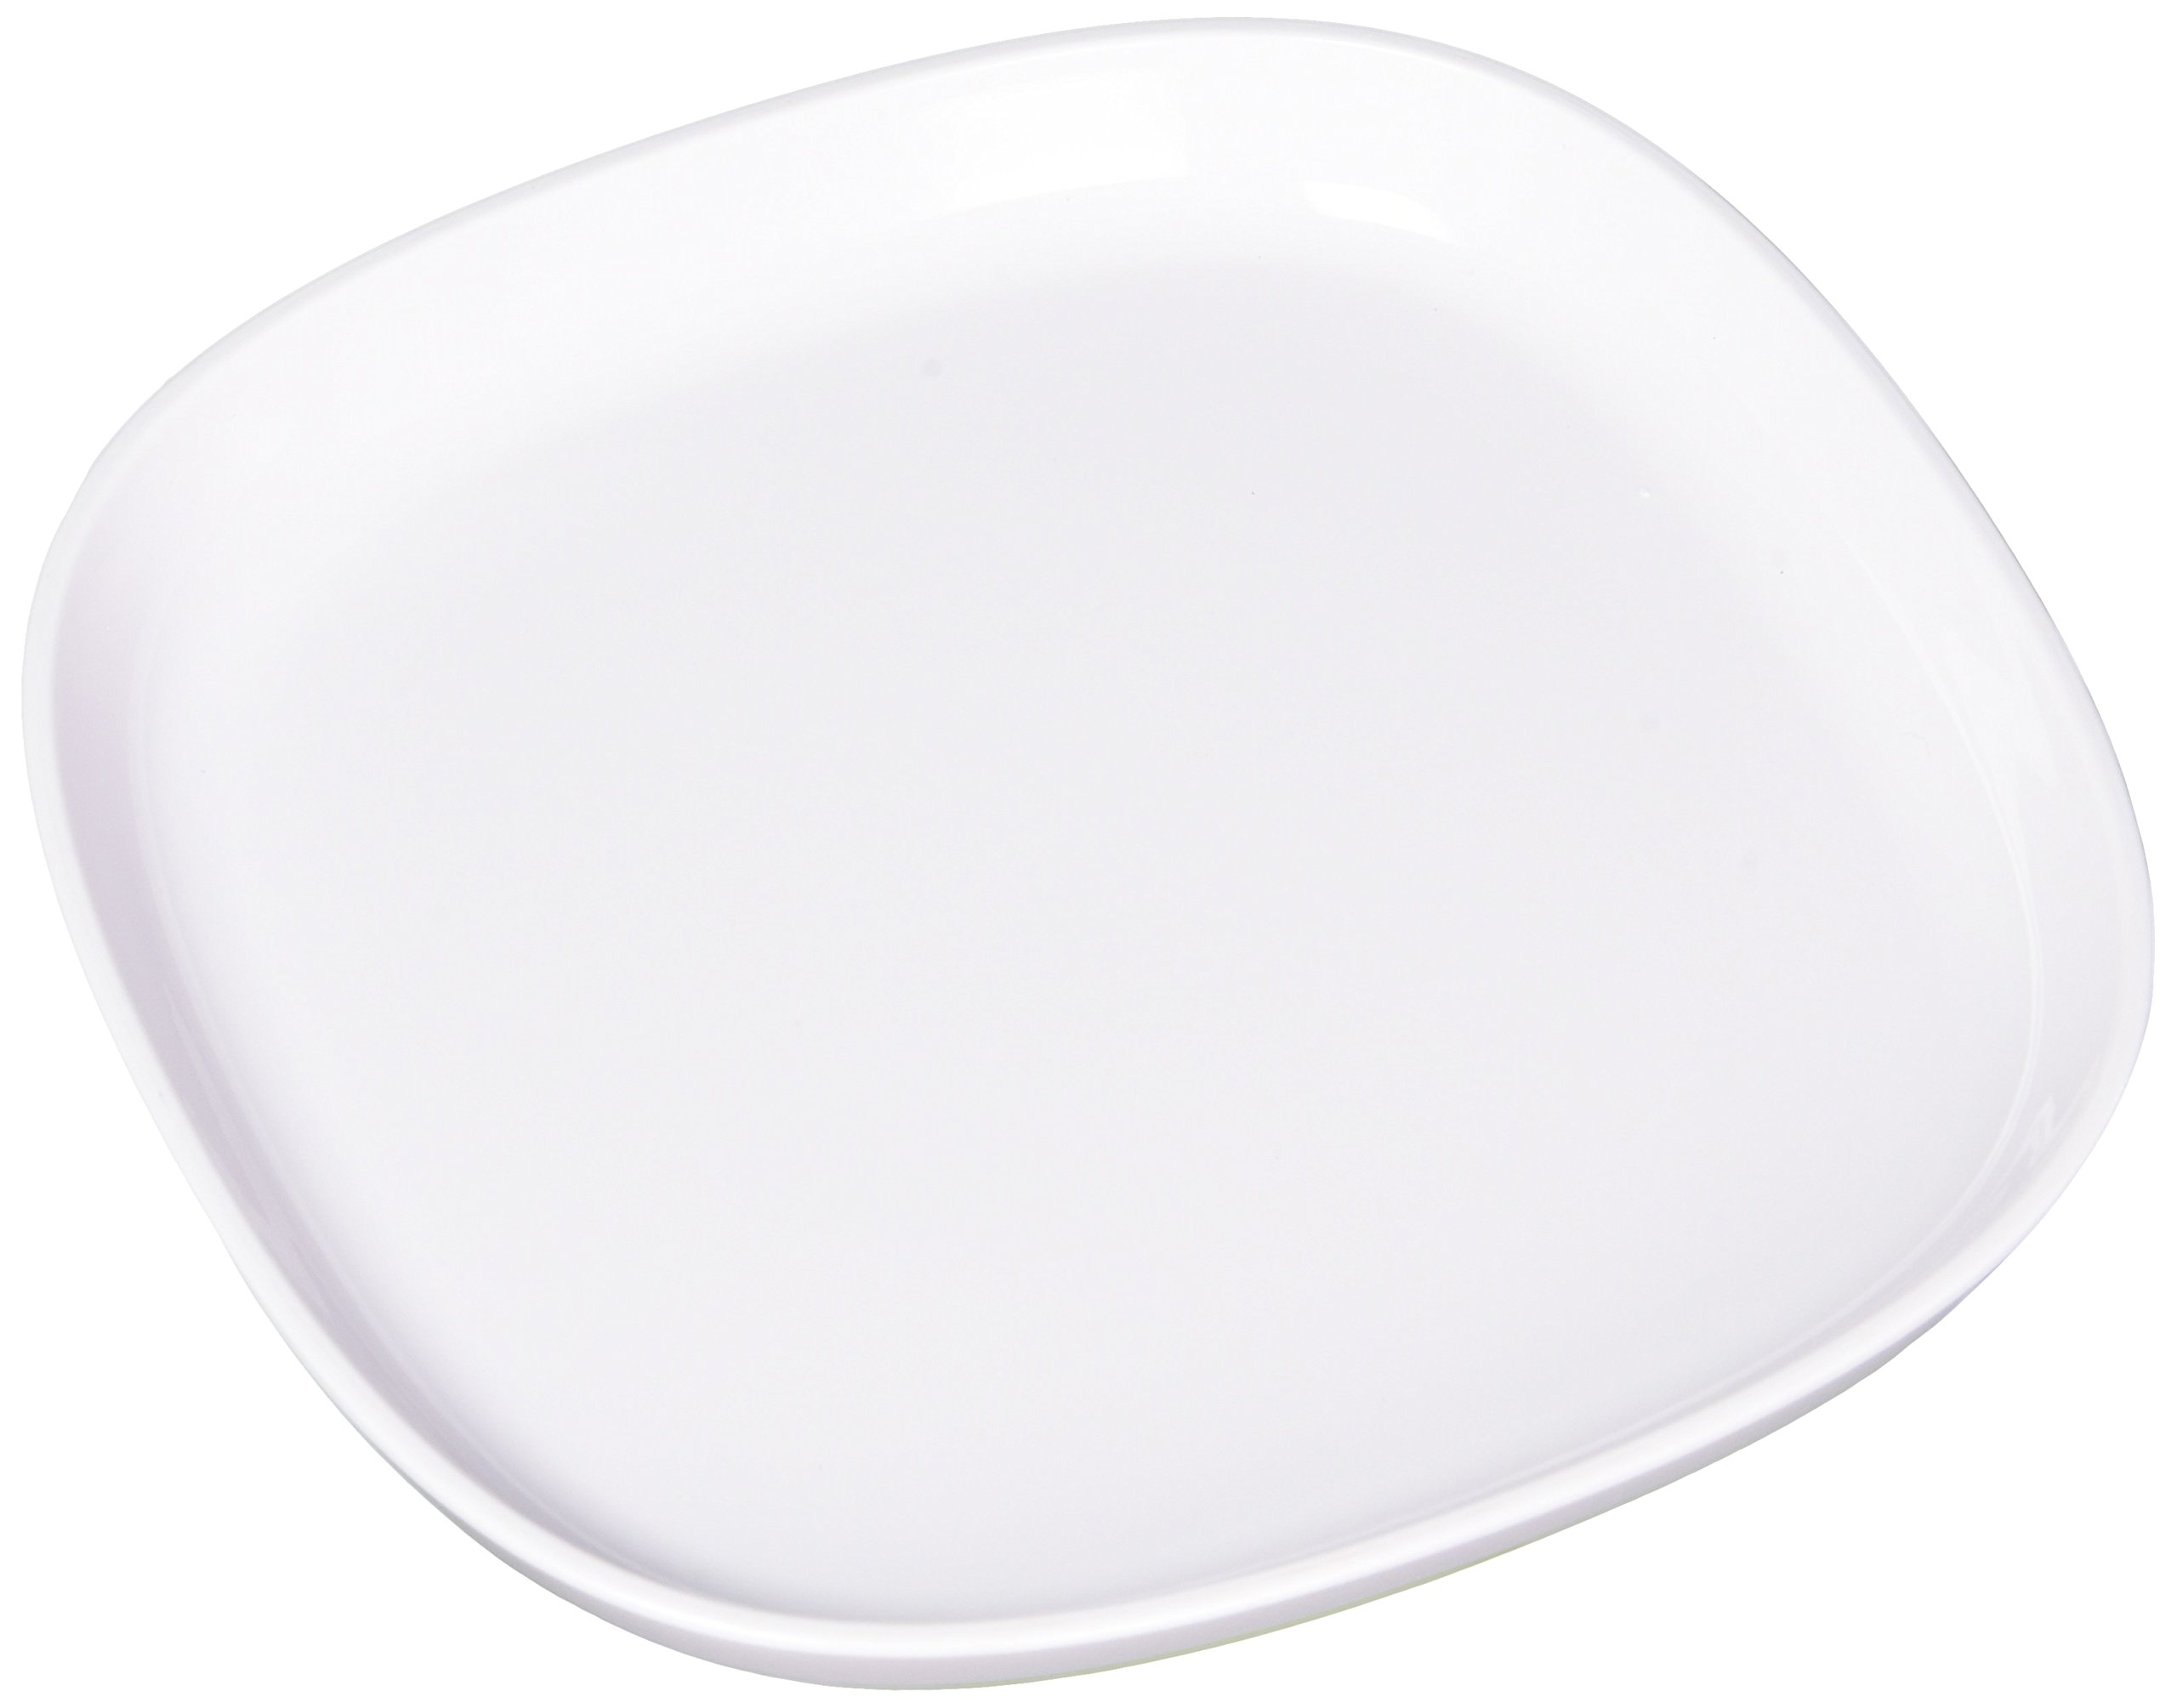 4moms high Chair Magnetic Feeding Plate - Dishwasher Safe by 4moms